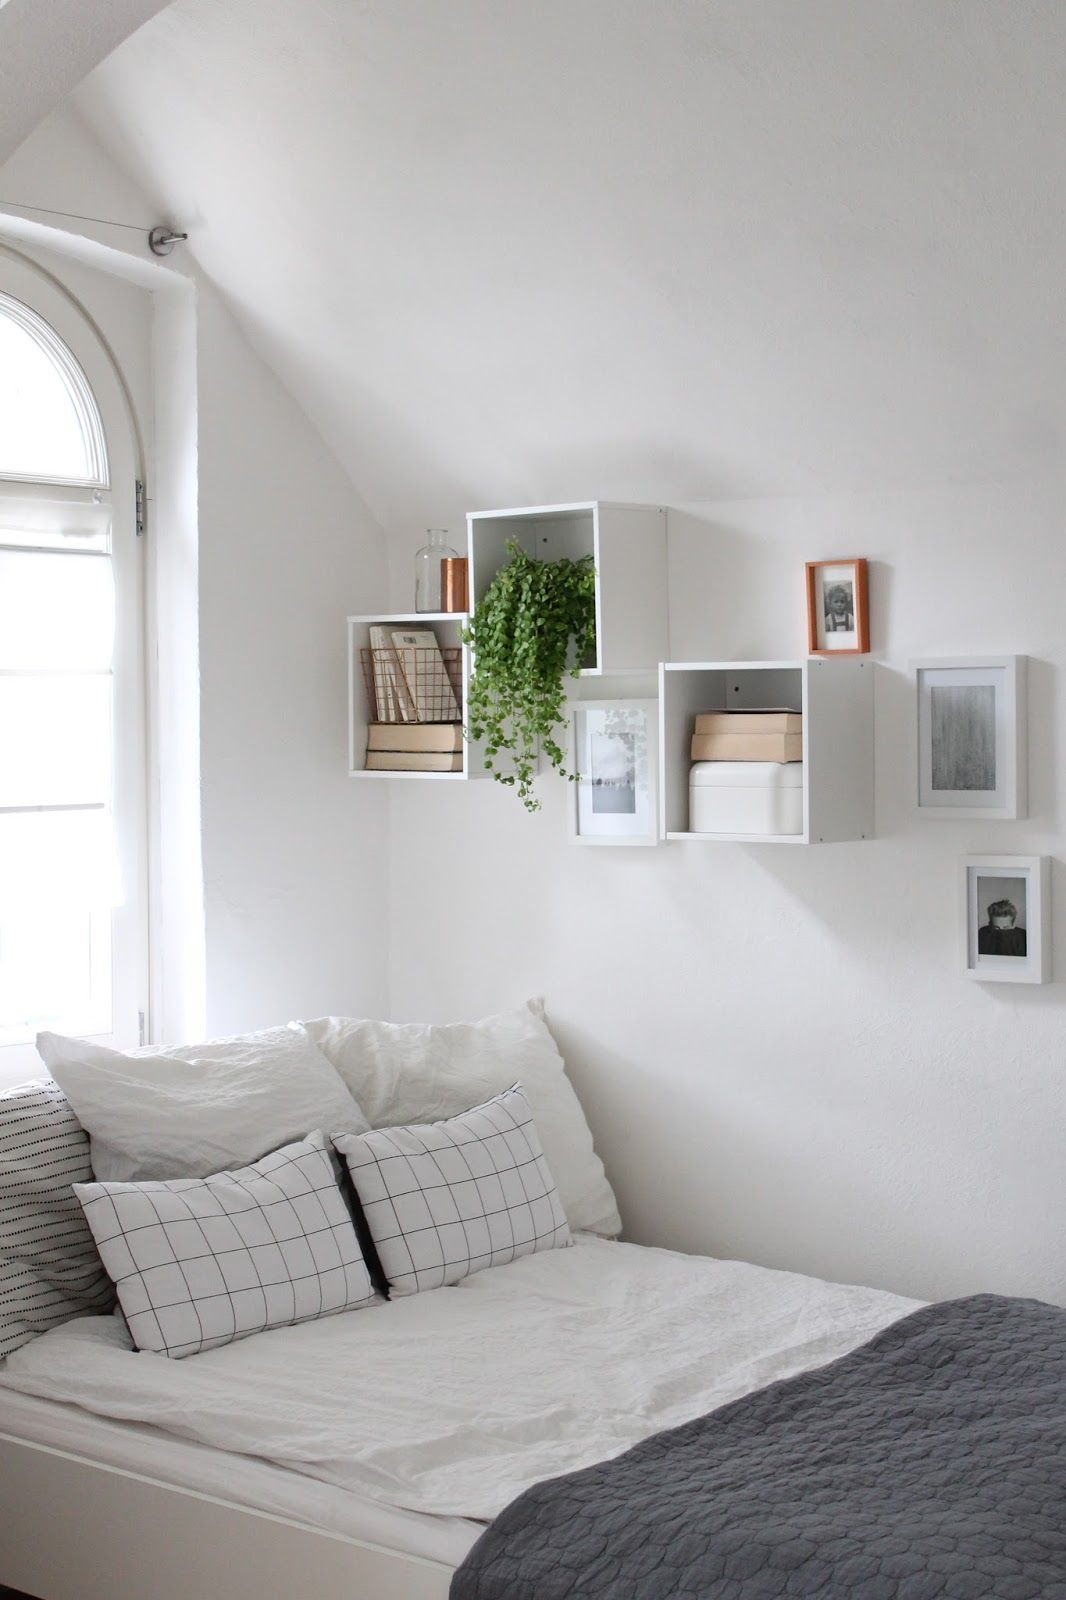 Wohn Schlafzimmer Inspiration Spare Room Decor Inspiration Love Those Shelves Home In 2019